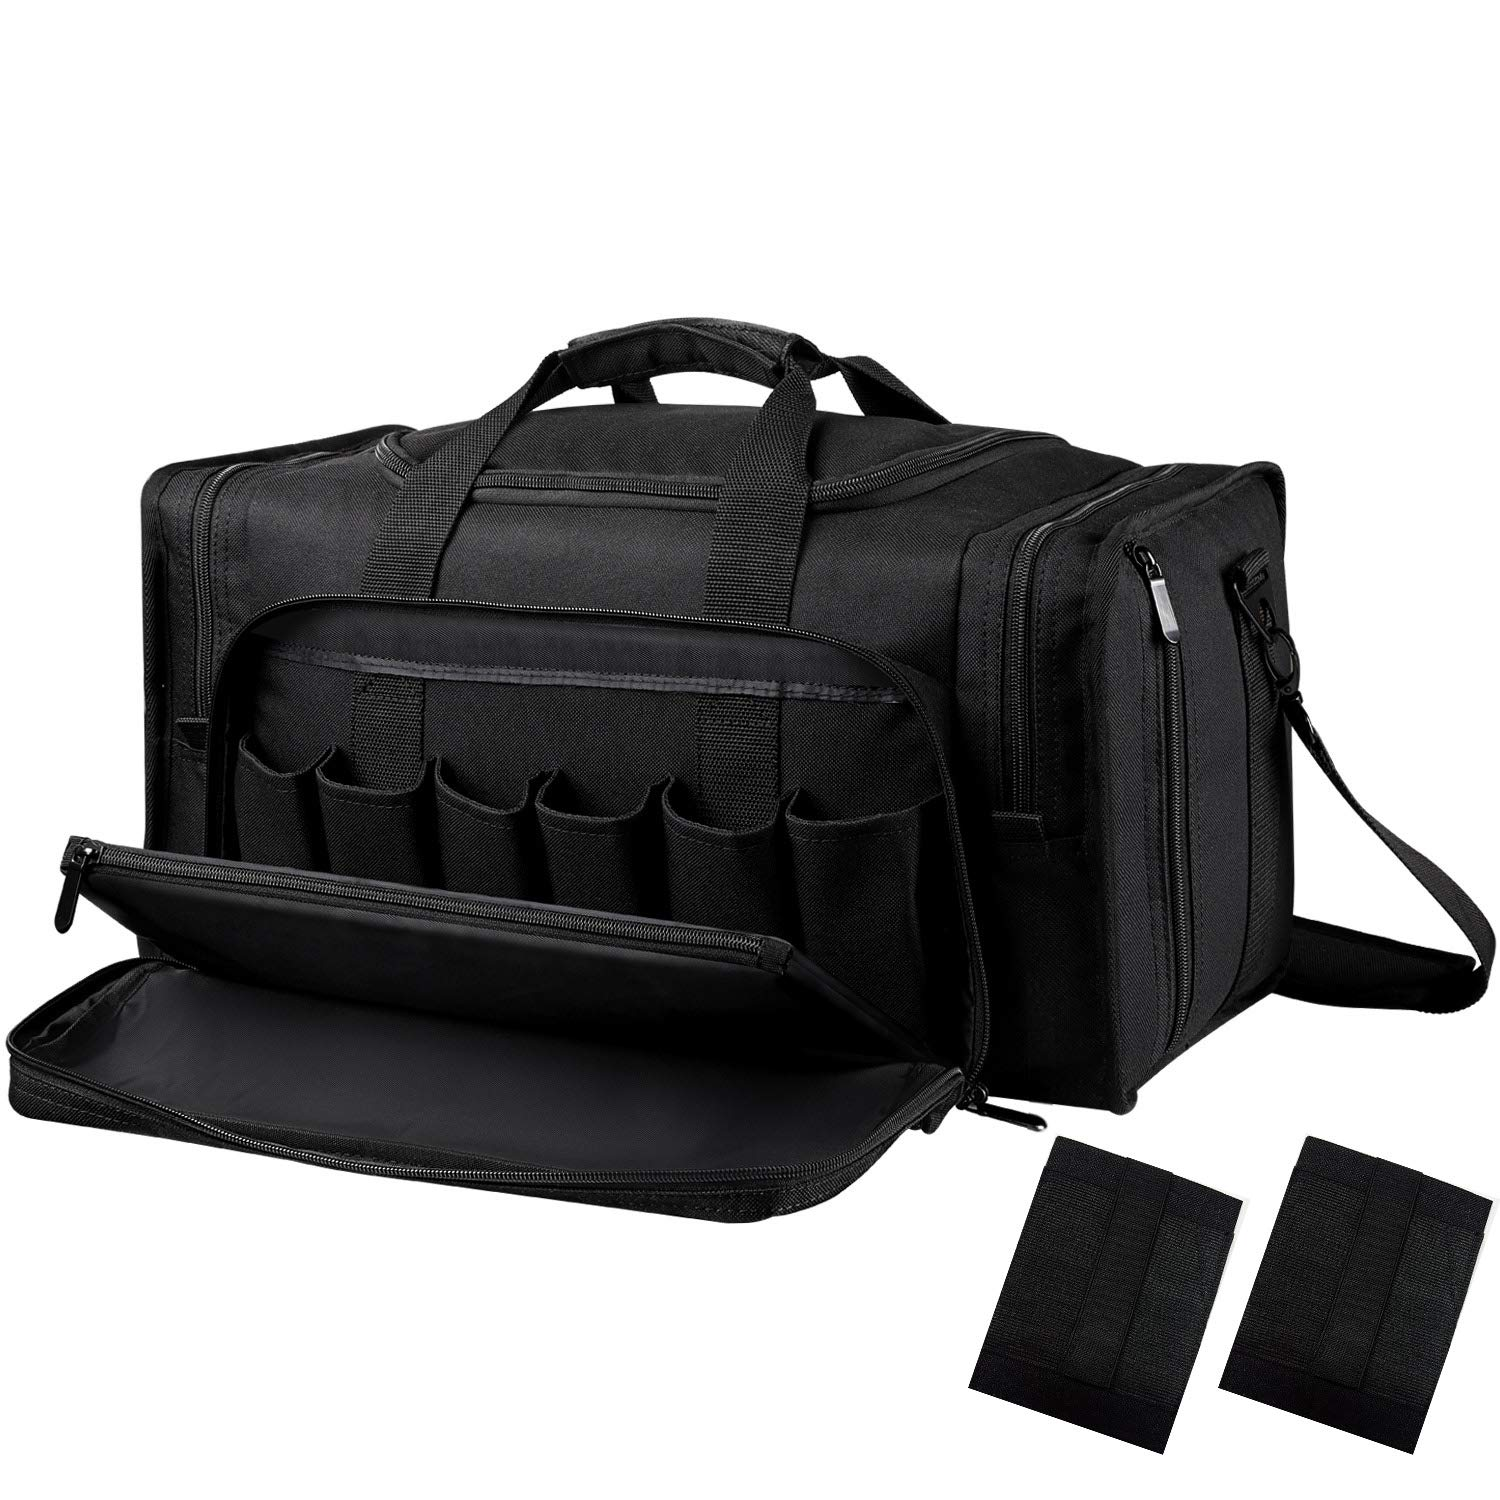 SoarOwl Tactical Gun Range Bag Shooting Duffle Bags for Handguns Pistols with Lockable Zipper and Heavy Duty Antiskid Feet (Black) by SoarOwl